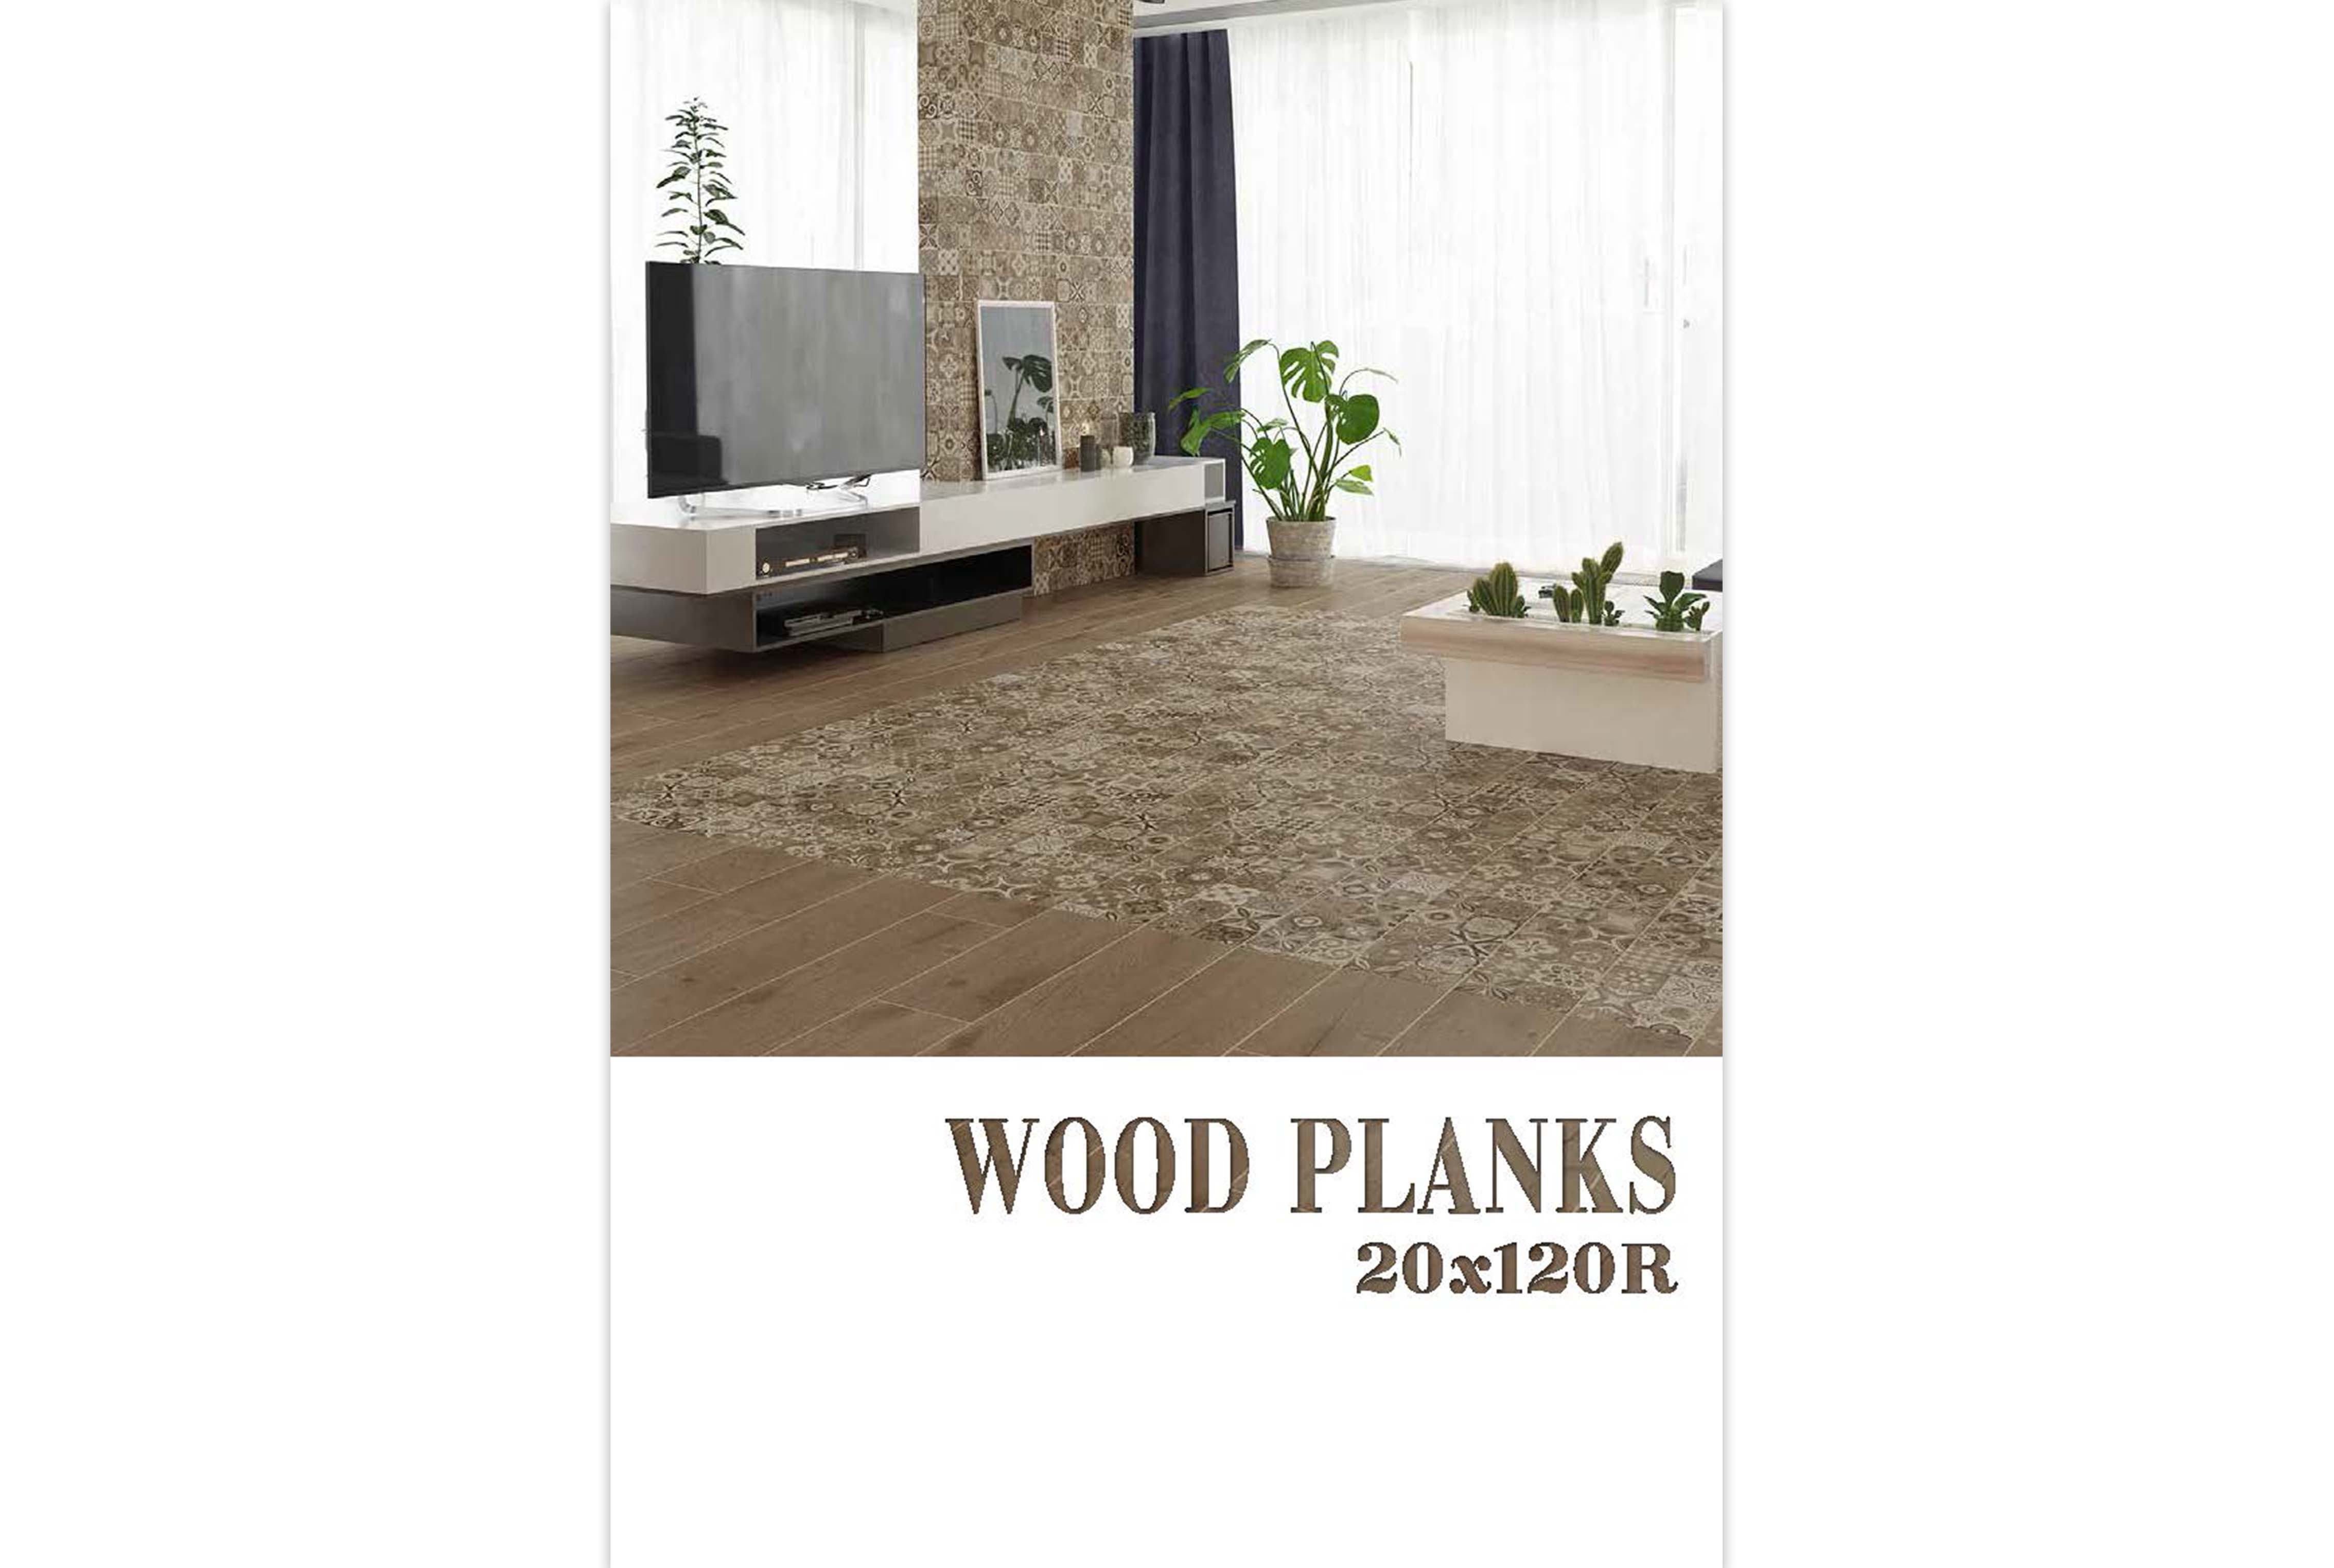 Wood planks collection 20х120 R